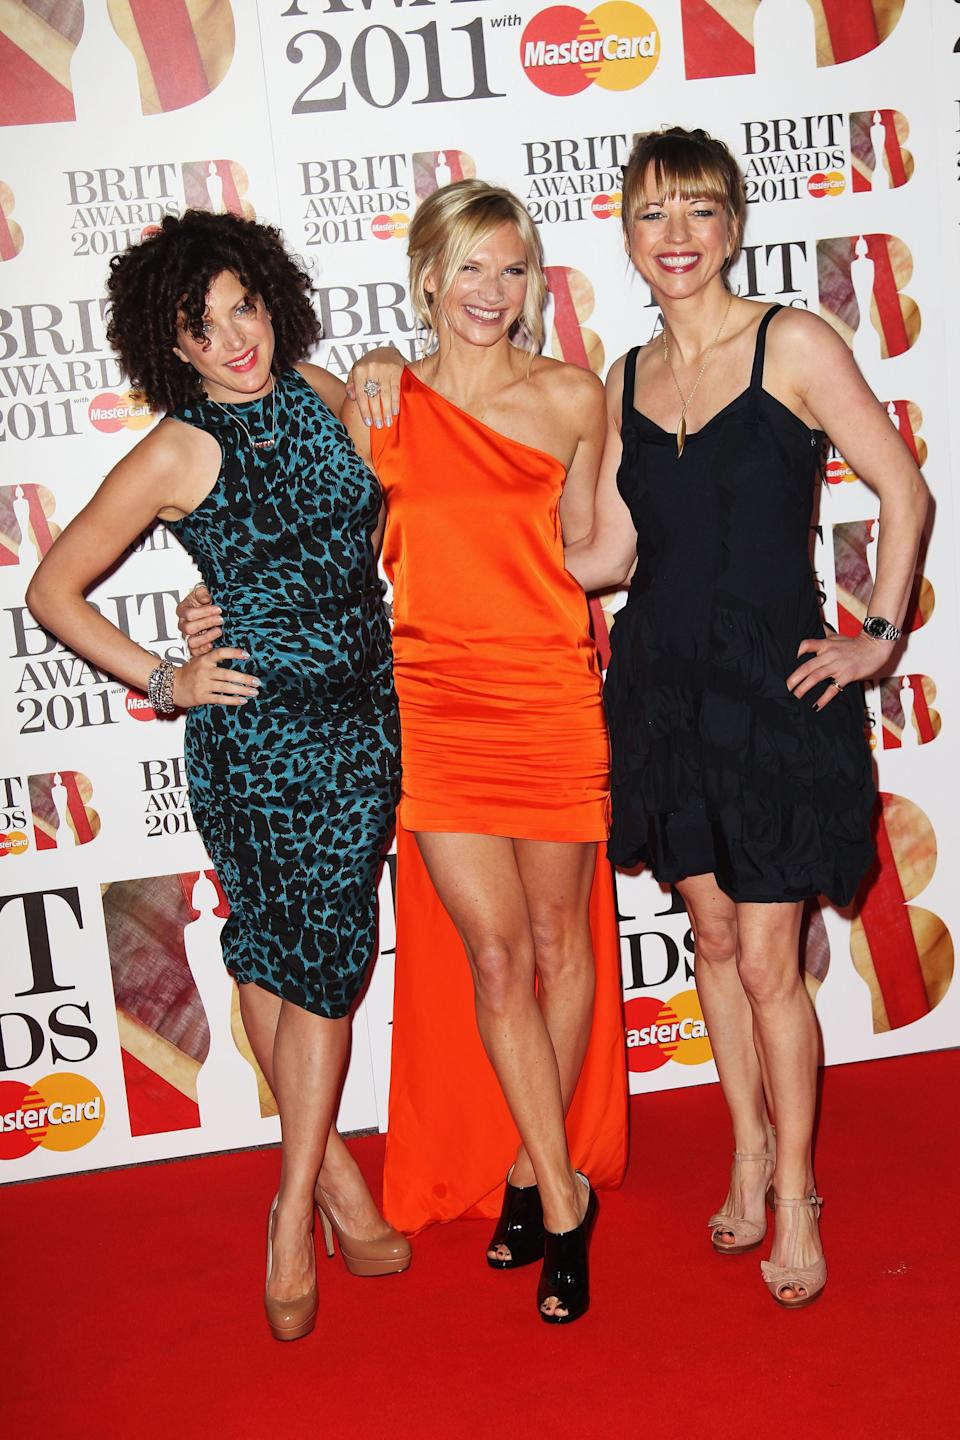 Annie Mac, Jo Whiley and Sara Cox at The Brit Awards in 2011 (Photo: Dave Hogan via Getty Images)